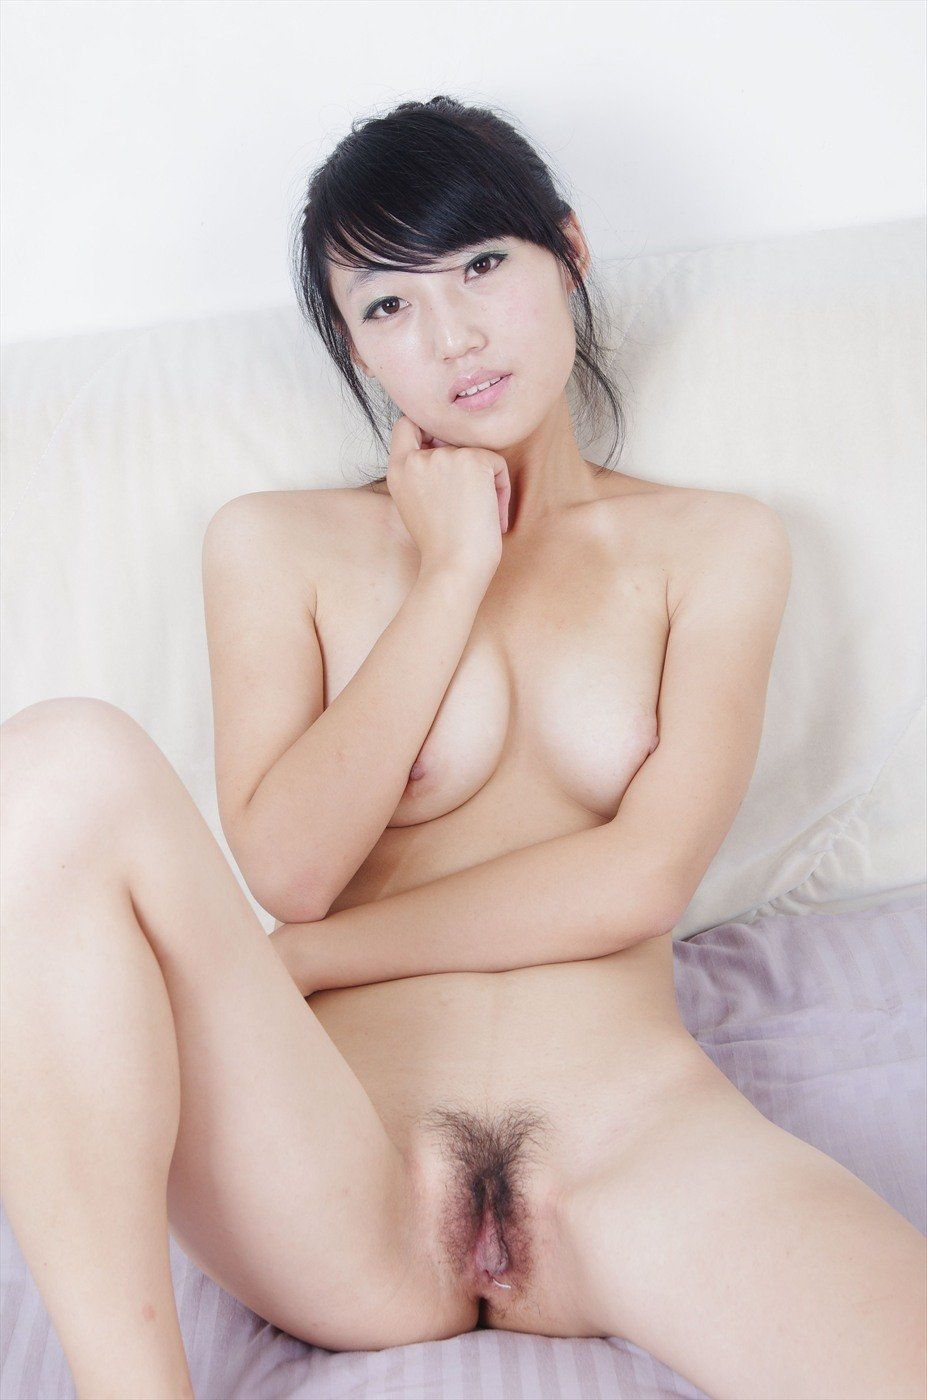 Asian Uncensored Tube asian nude bodies . hot naked pics.